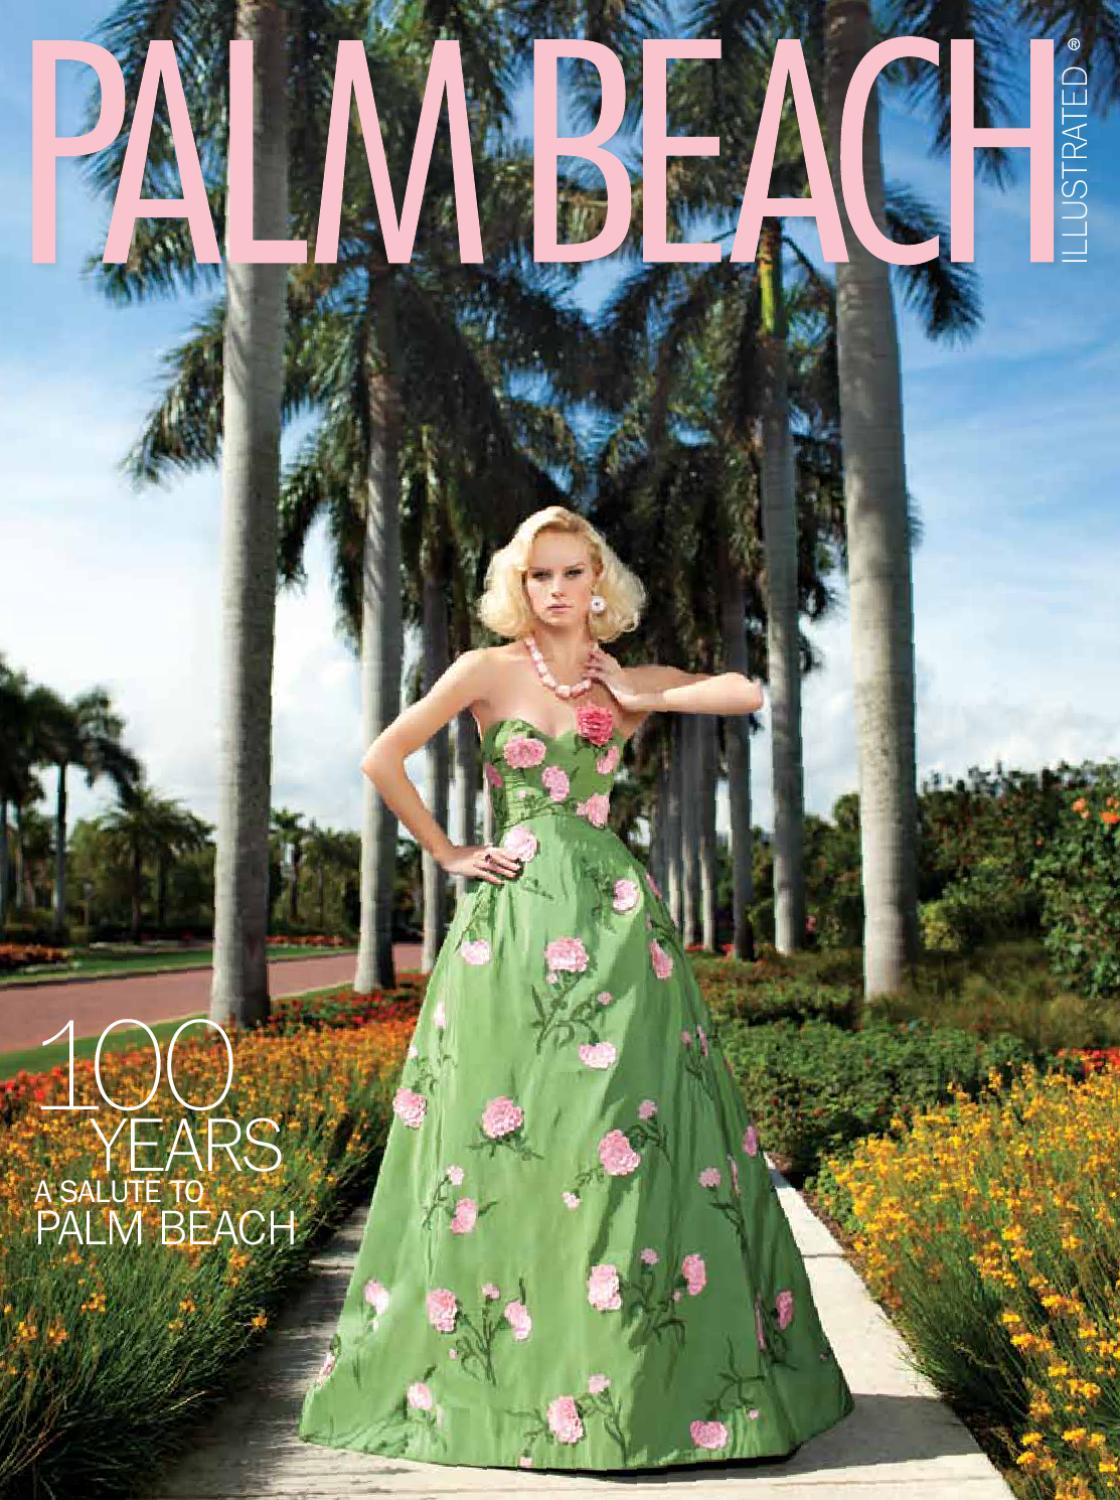 Palm Beach Illustrated April 2011 by Palm Beach Media Group - issuu